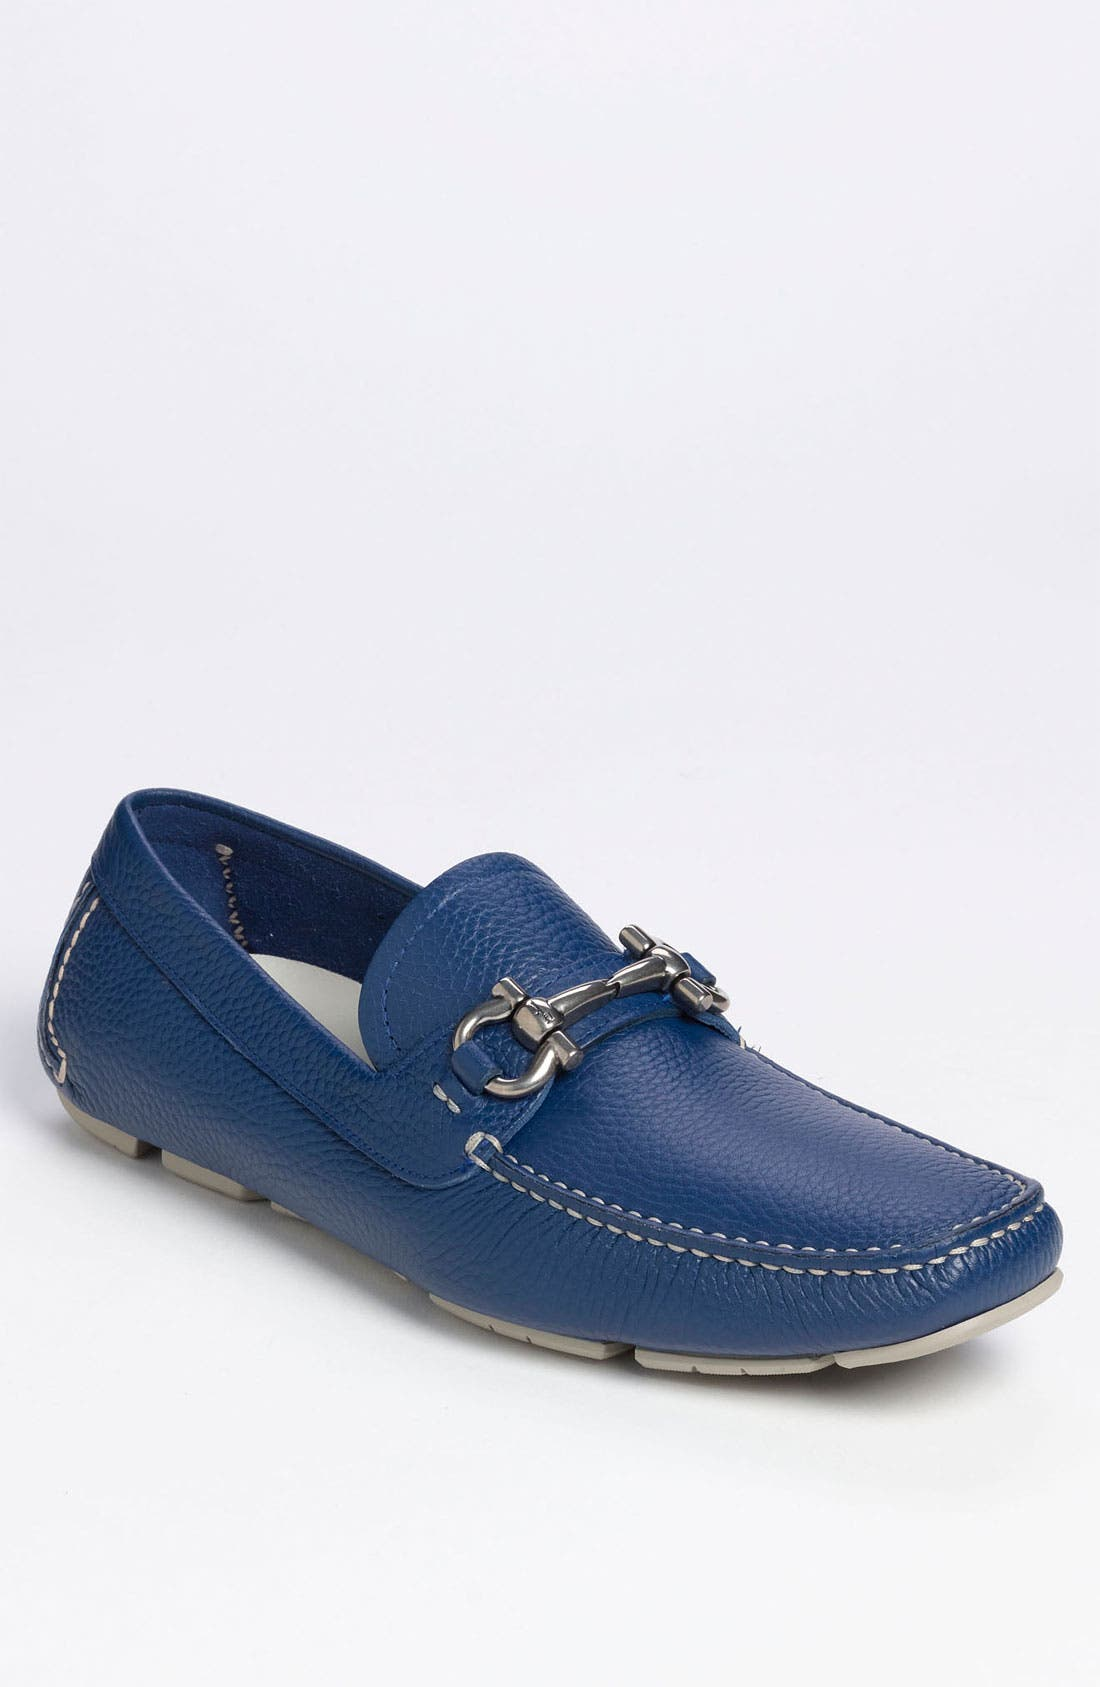 Main Image - Salvatore Ferragamo 'Parigi' Driving Shoe